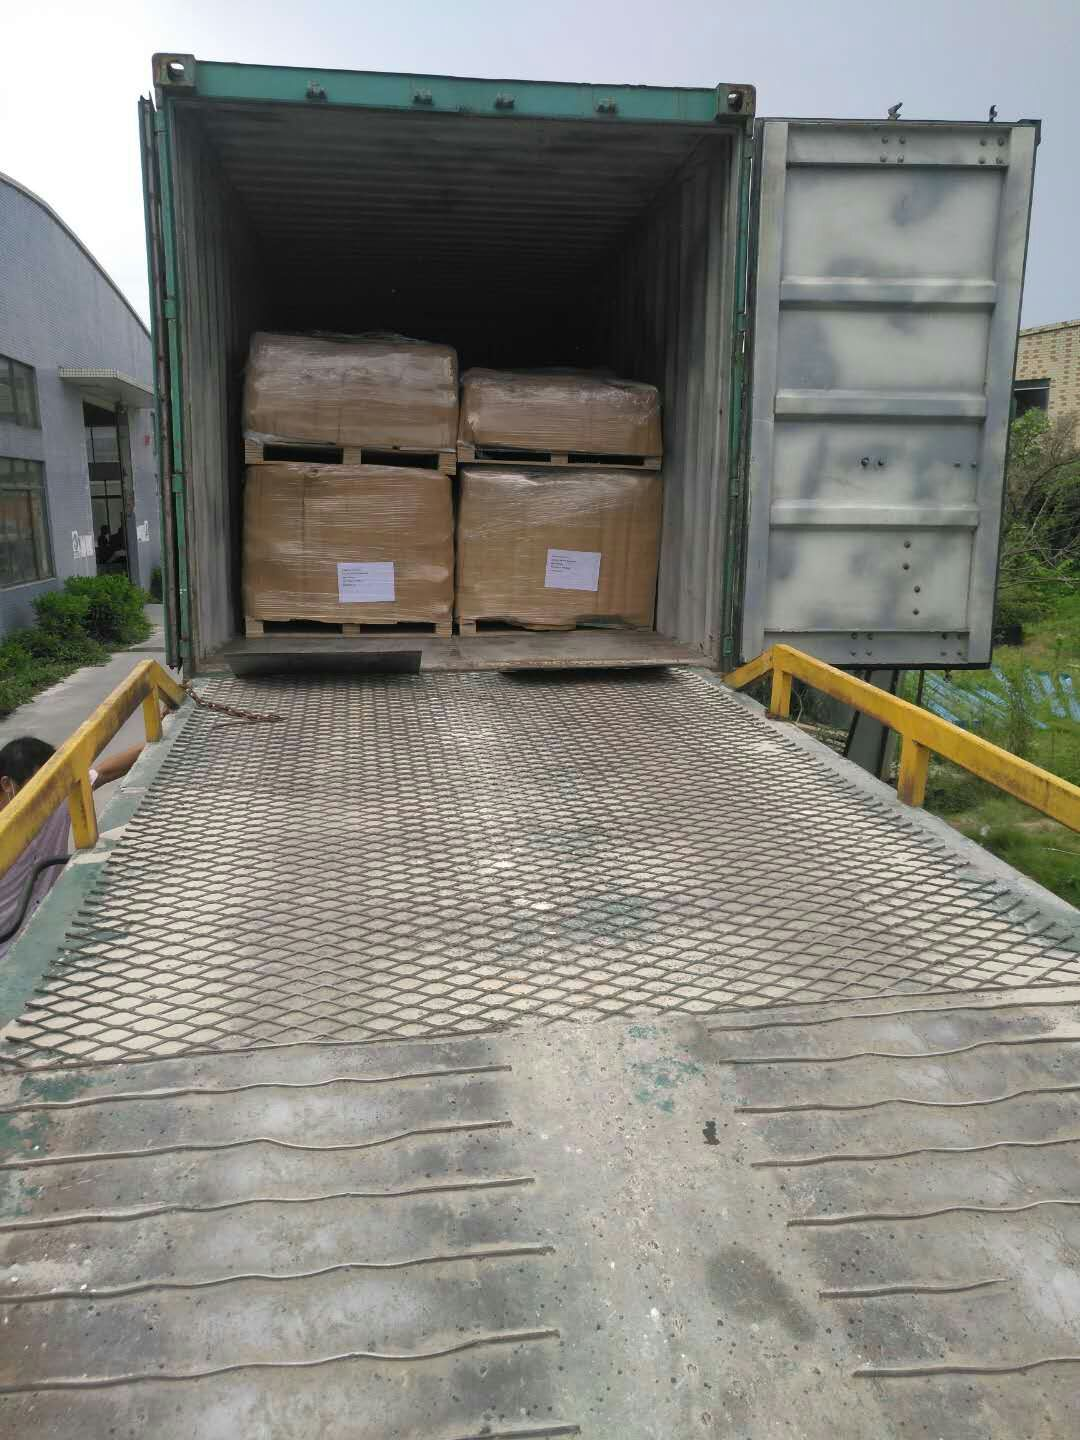 YUNYAN-News About C2TE Tile Adhesive 920 bags and Tile Grout 25 bags delivered to England